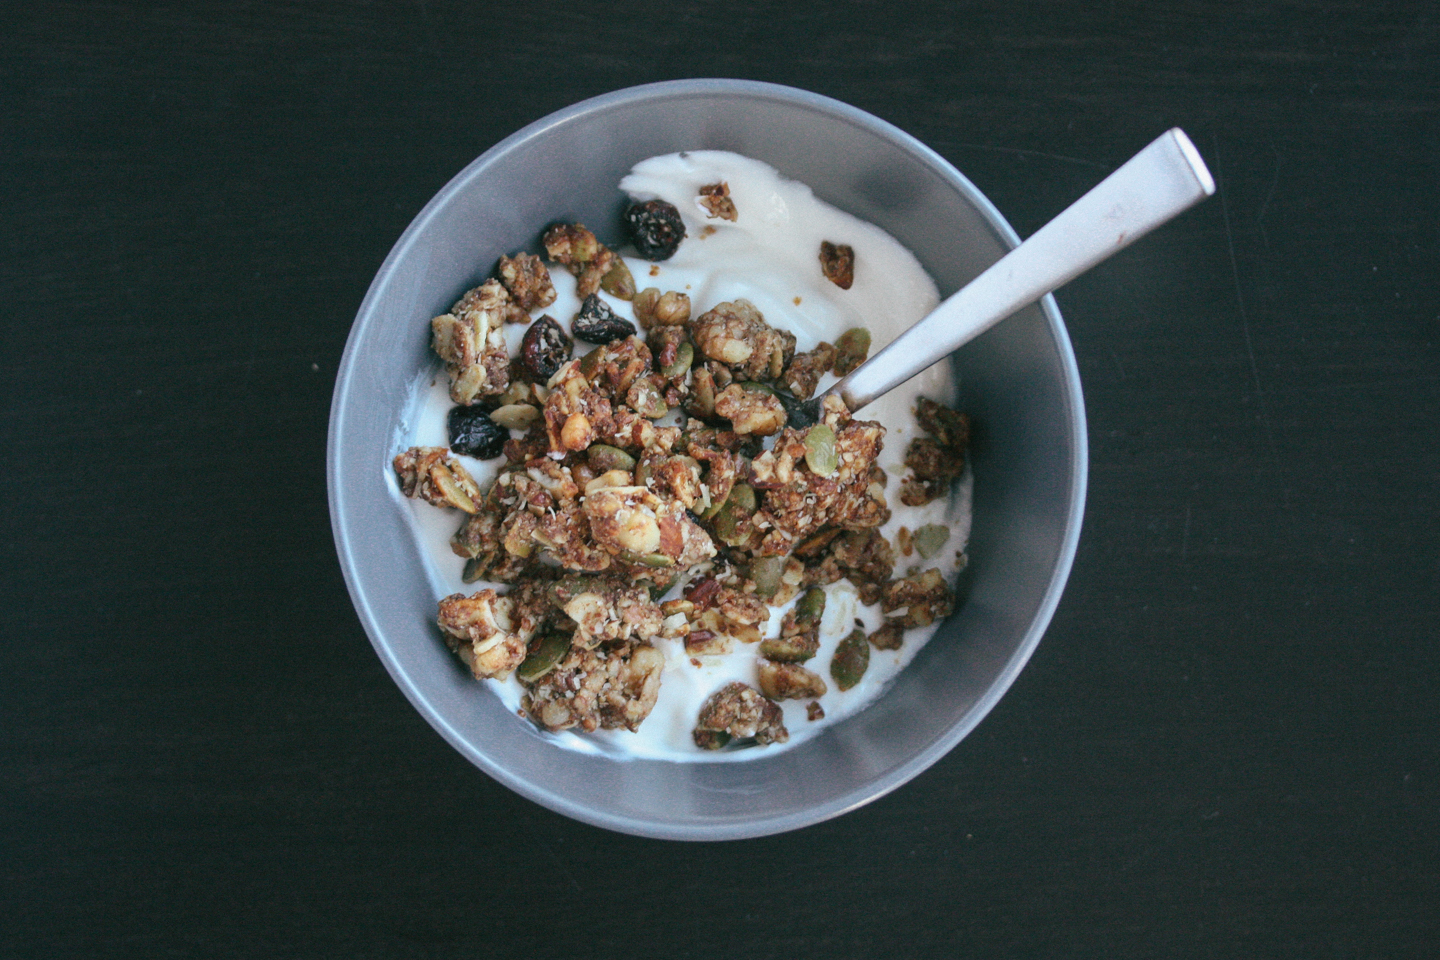 Paleonola: Grain Free Granola Review